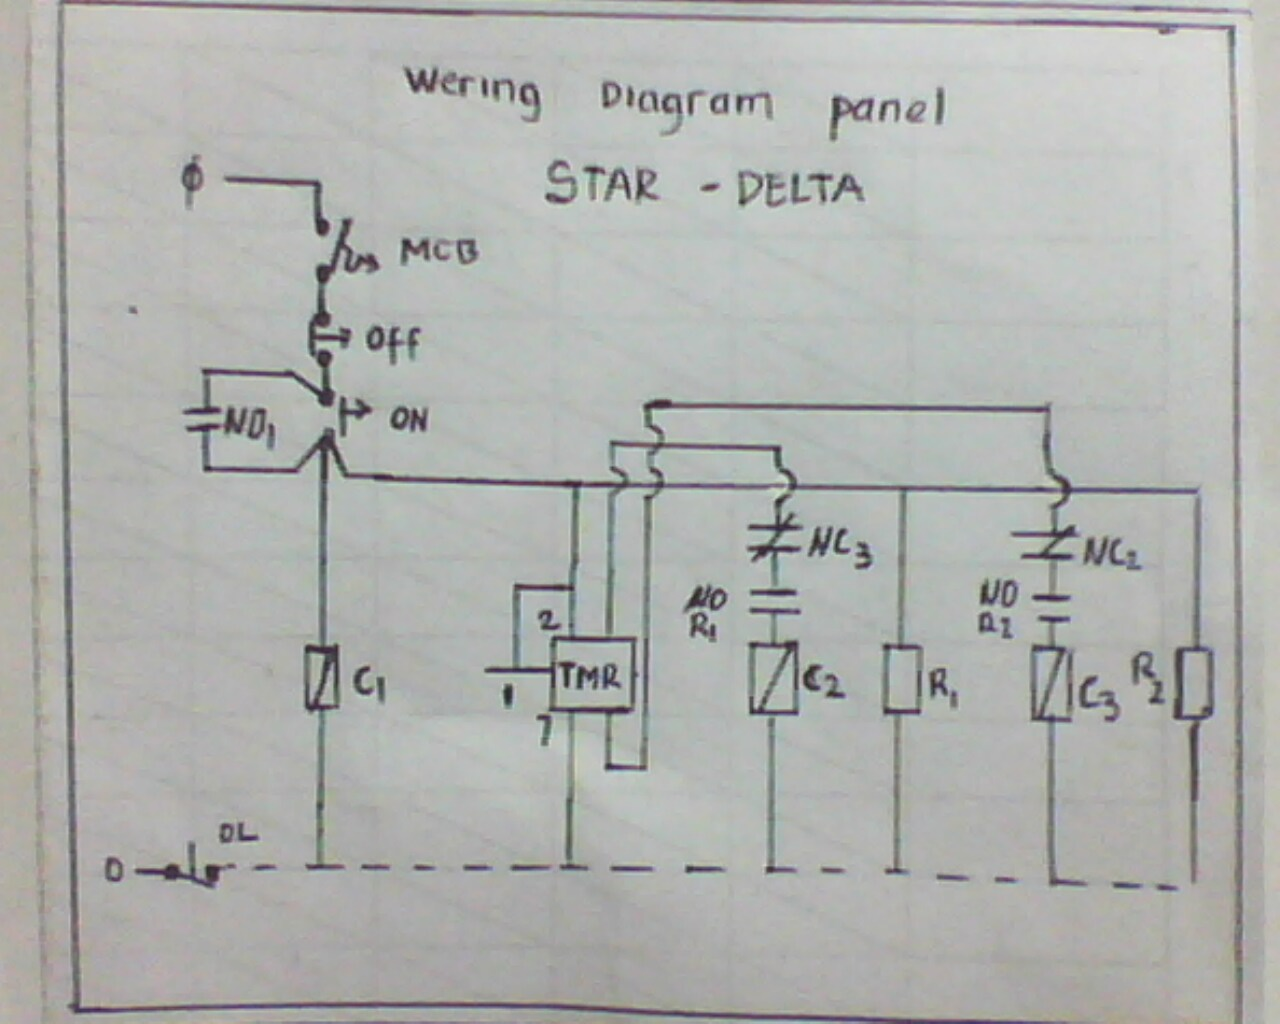 5 Star Delta Starter Control Wiring Diagram Library Circuit On Motor Is The To Run Electric Which At Time